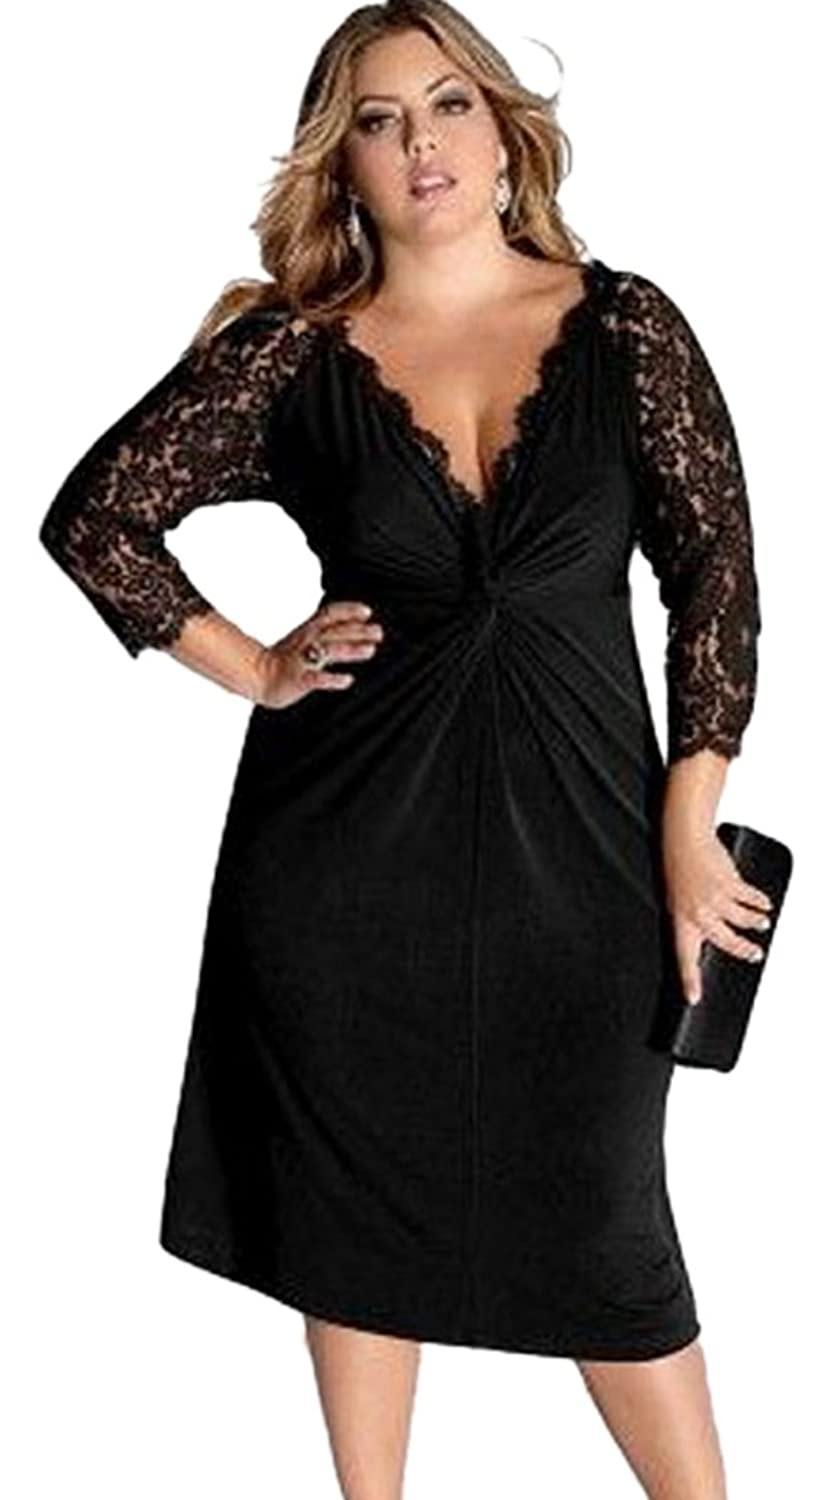 Bestime Plus Size Cocktail Dress with Lace Sleeves